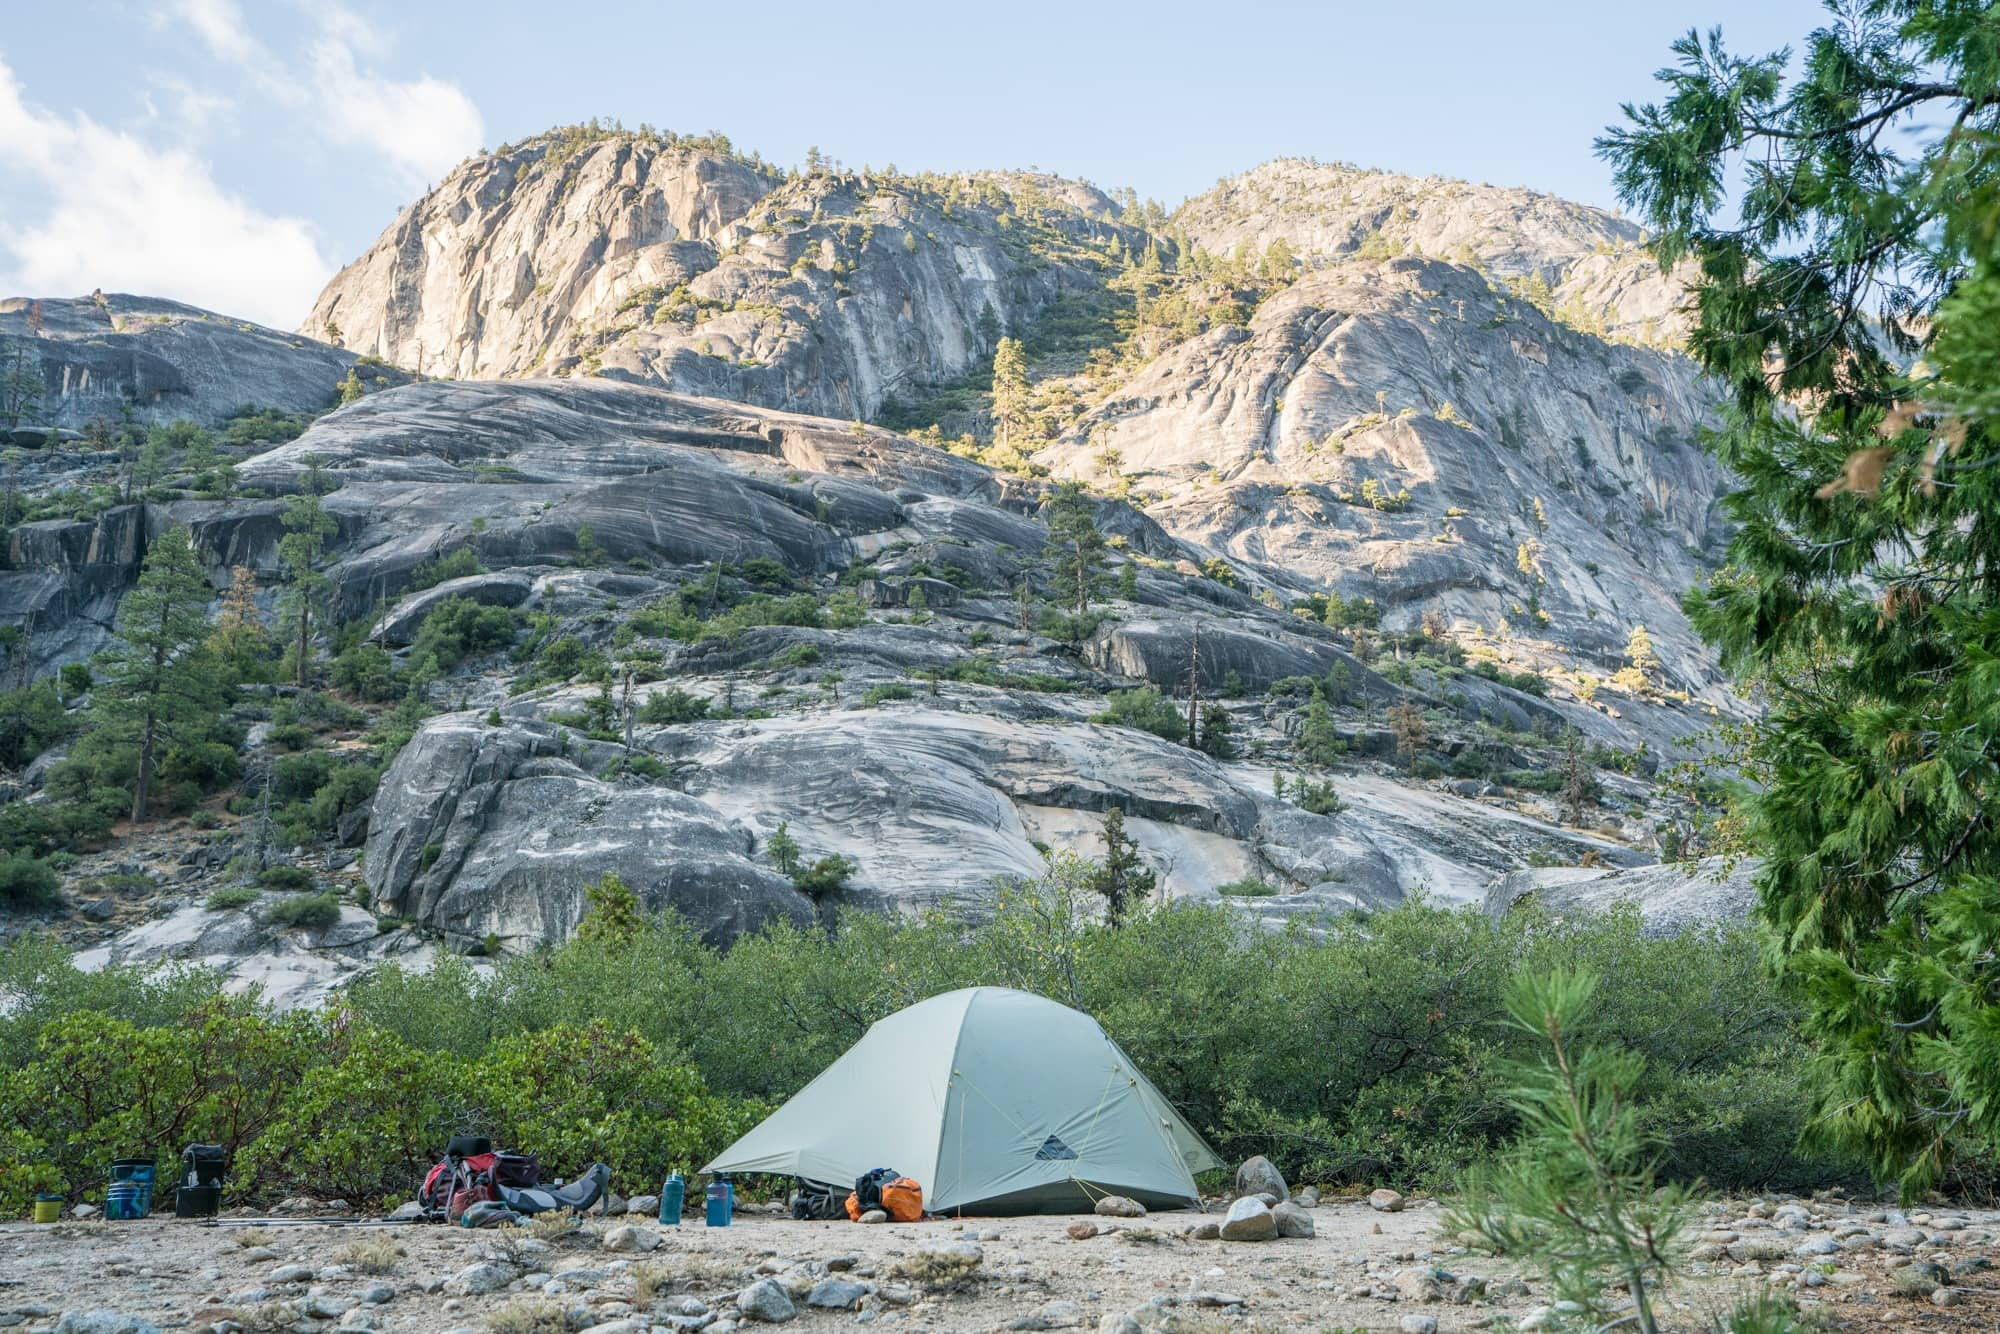 Plan an epic Yosemite backpacking trip through the Grand Canyon of the Tuolumne with our trail guide containing info on permits, transportation & more.